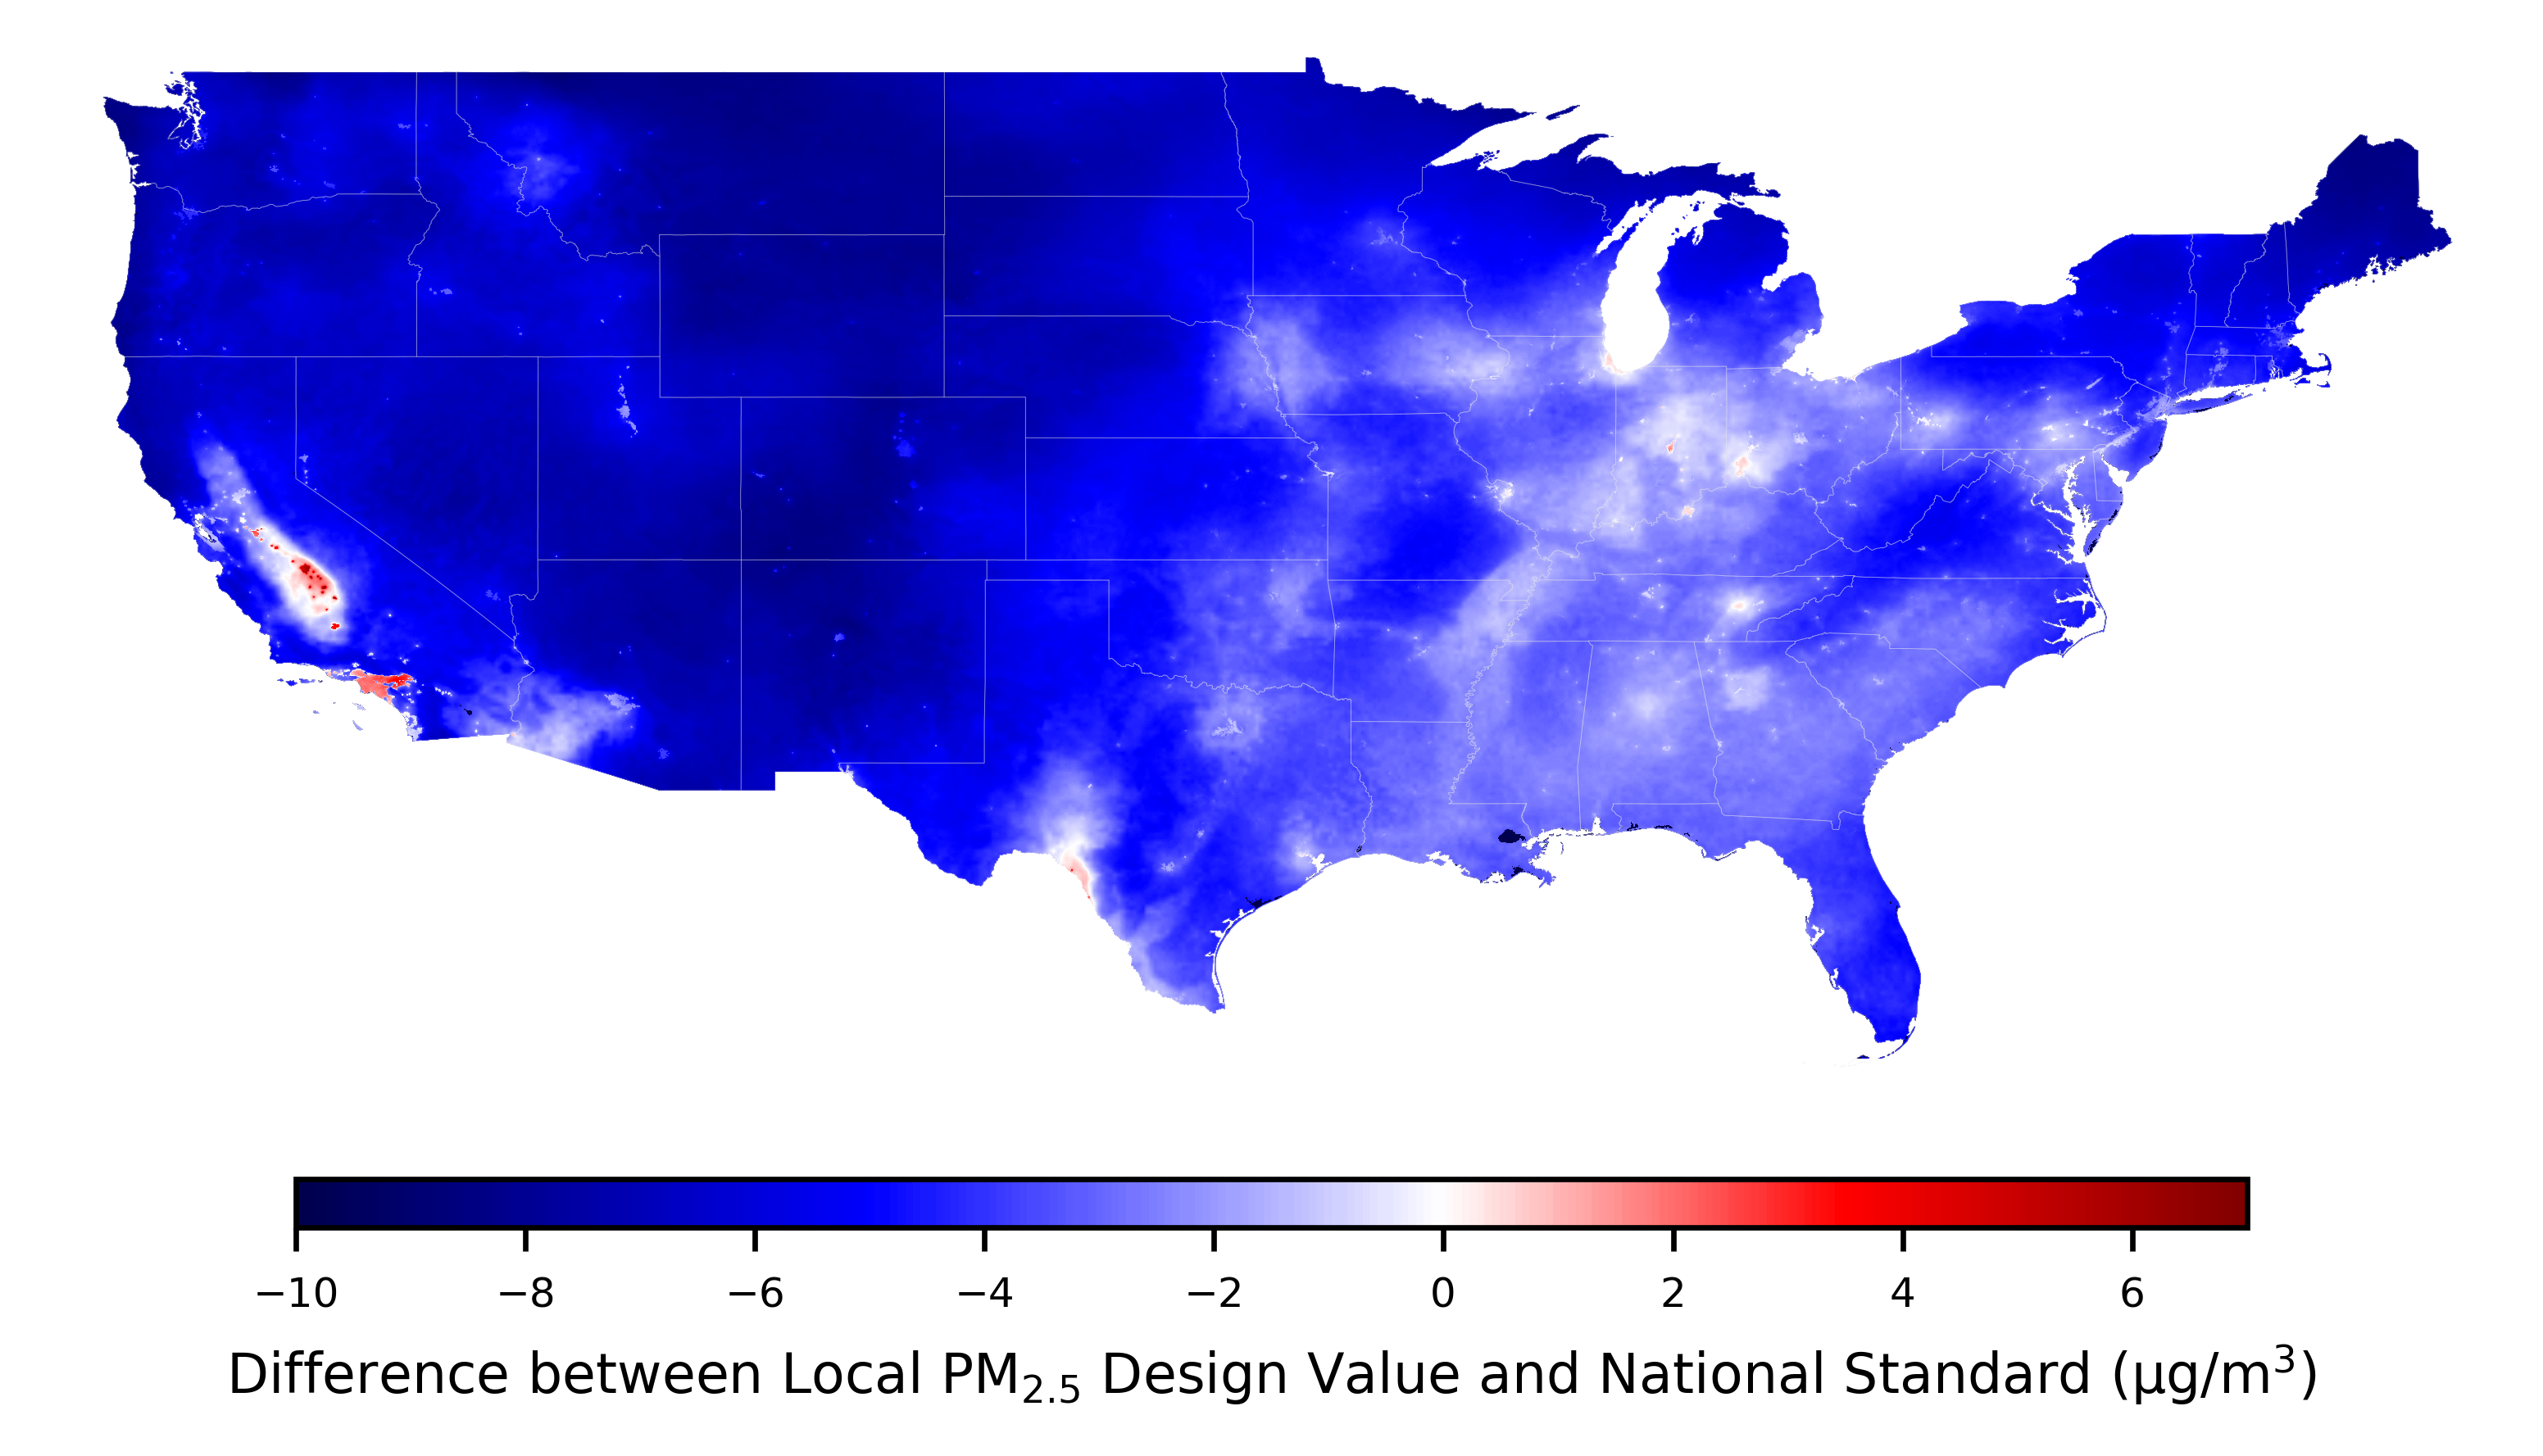 Using Satellite Data To Fill The Gaps In The Us Air Pollution - Air-pollution-us-map